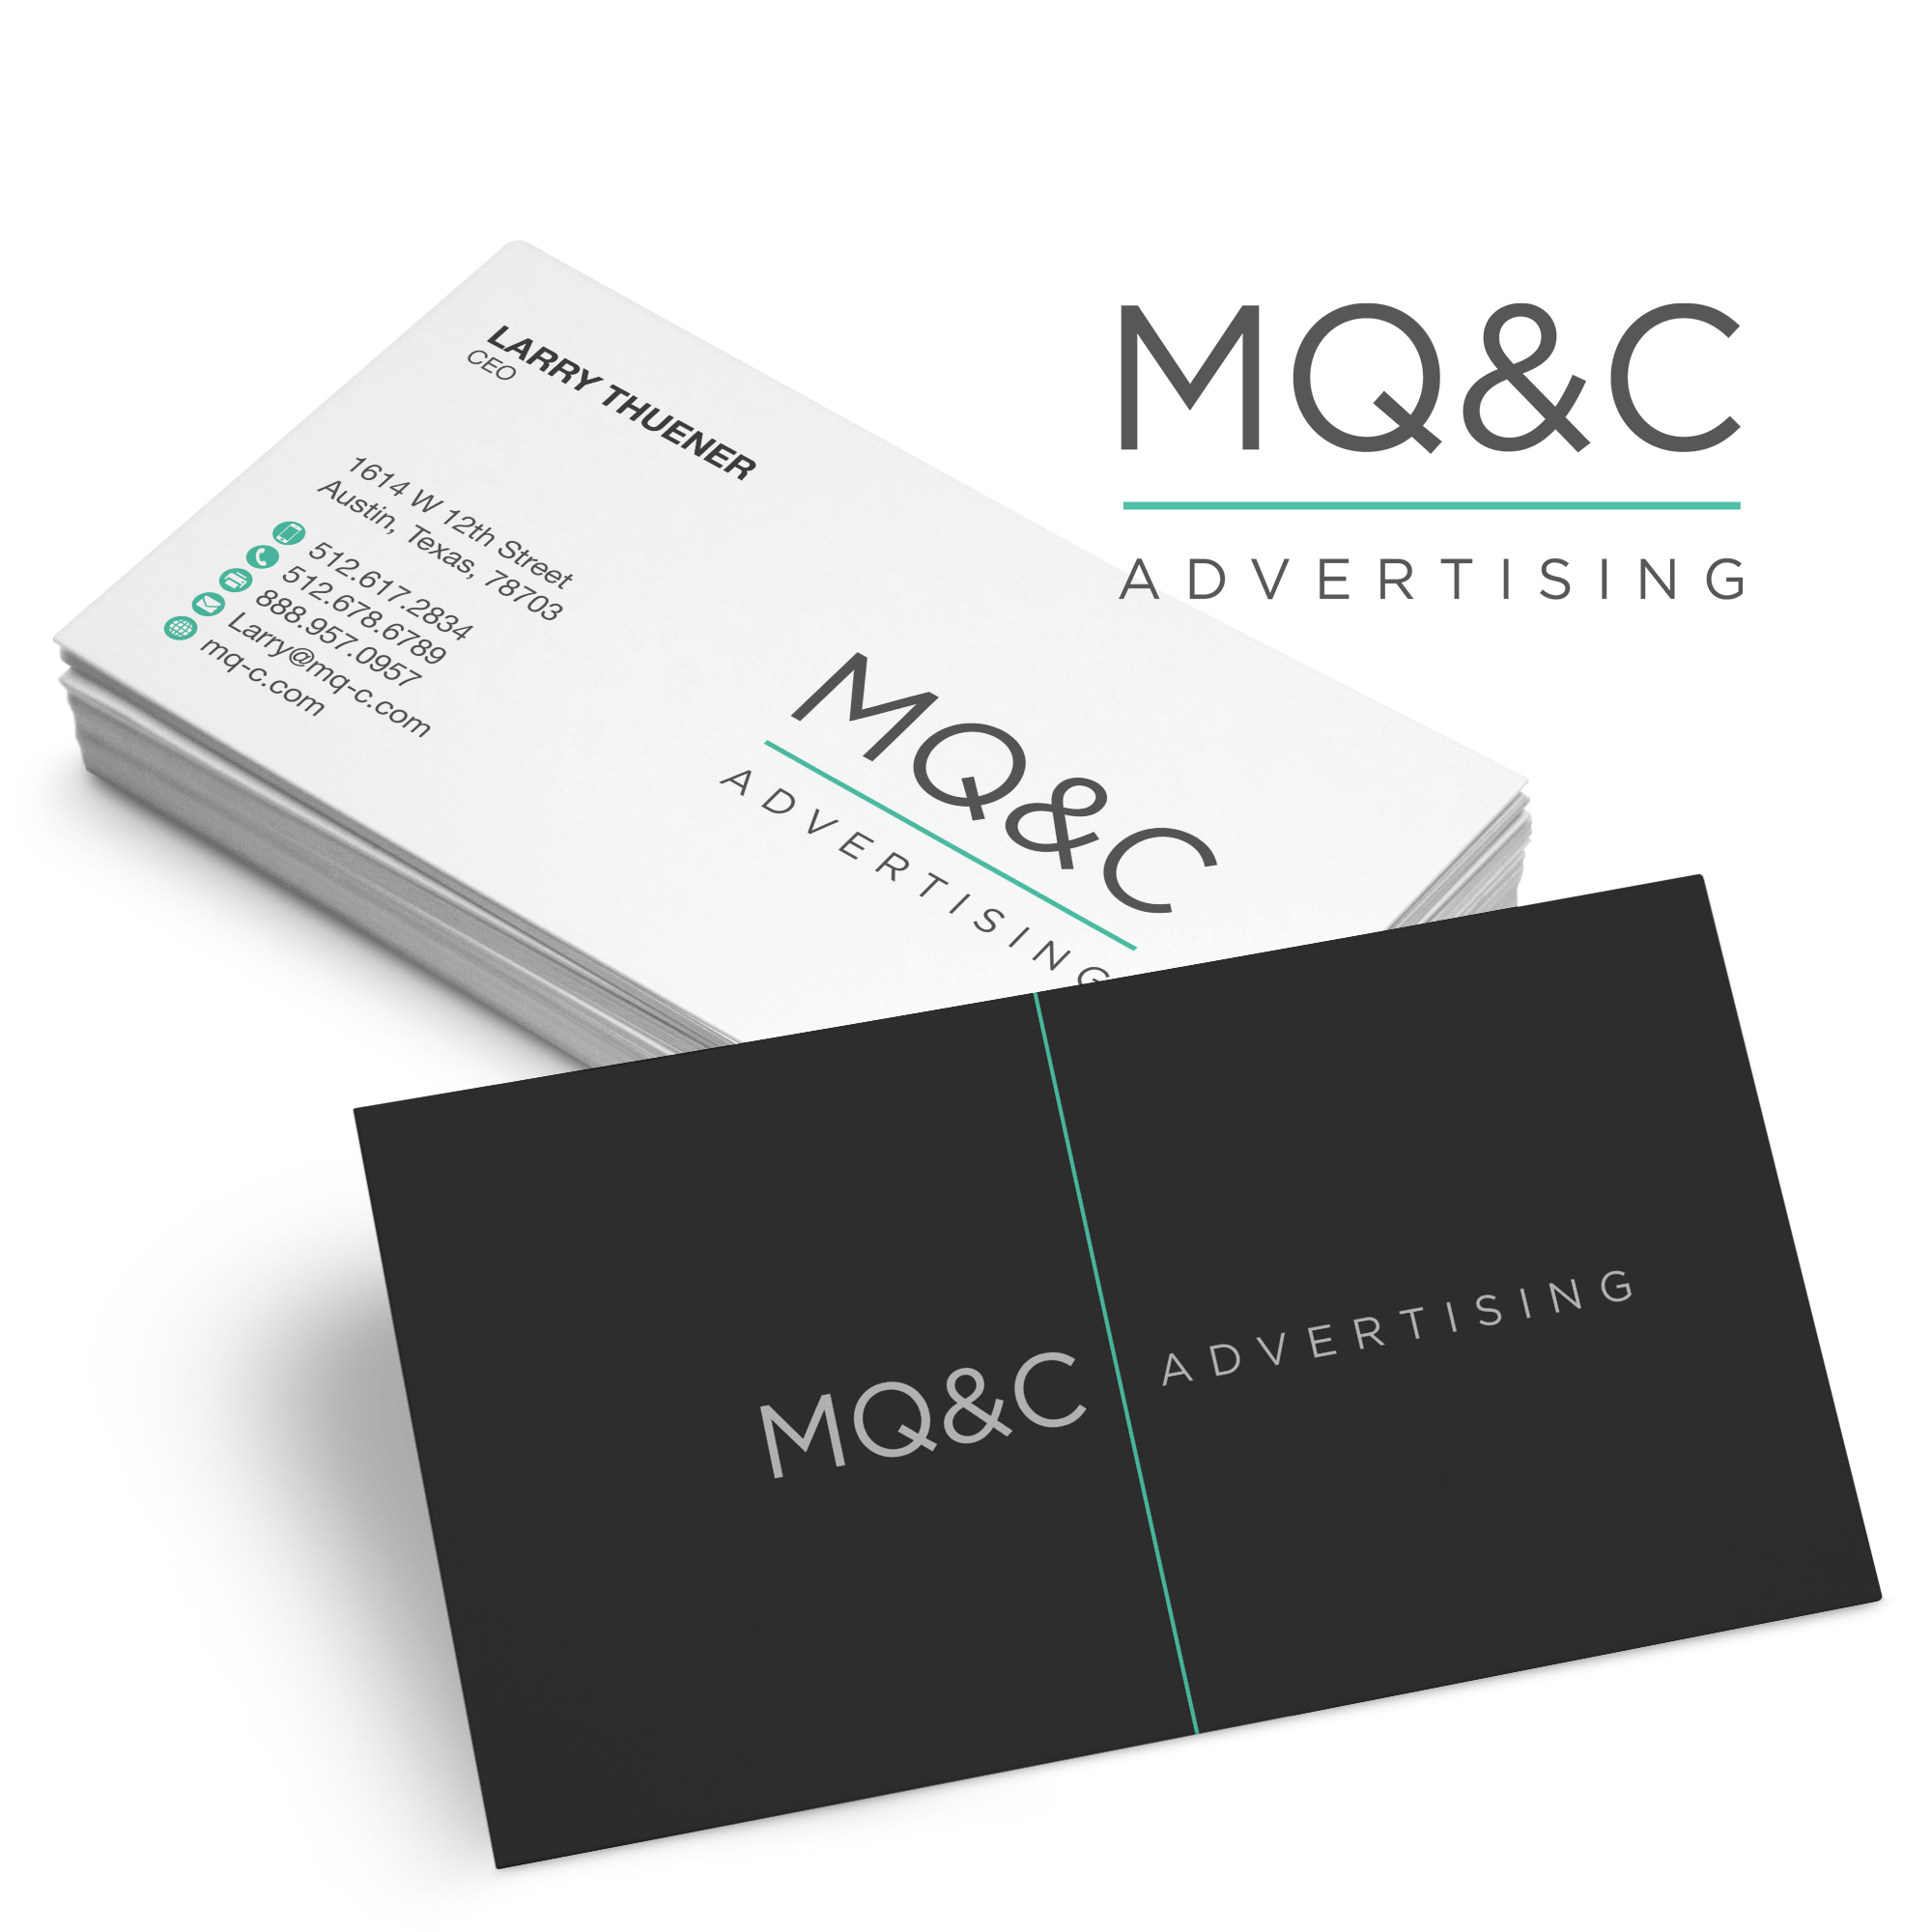 BlueMooonのlogo-business-card-design